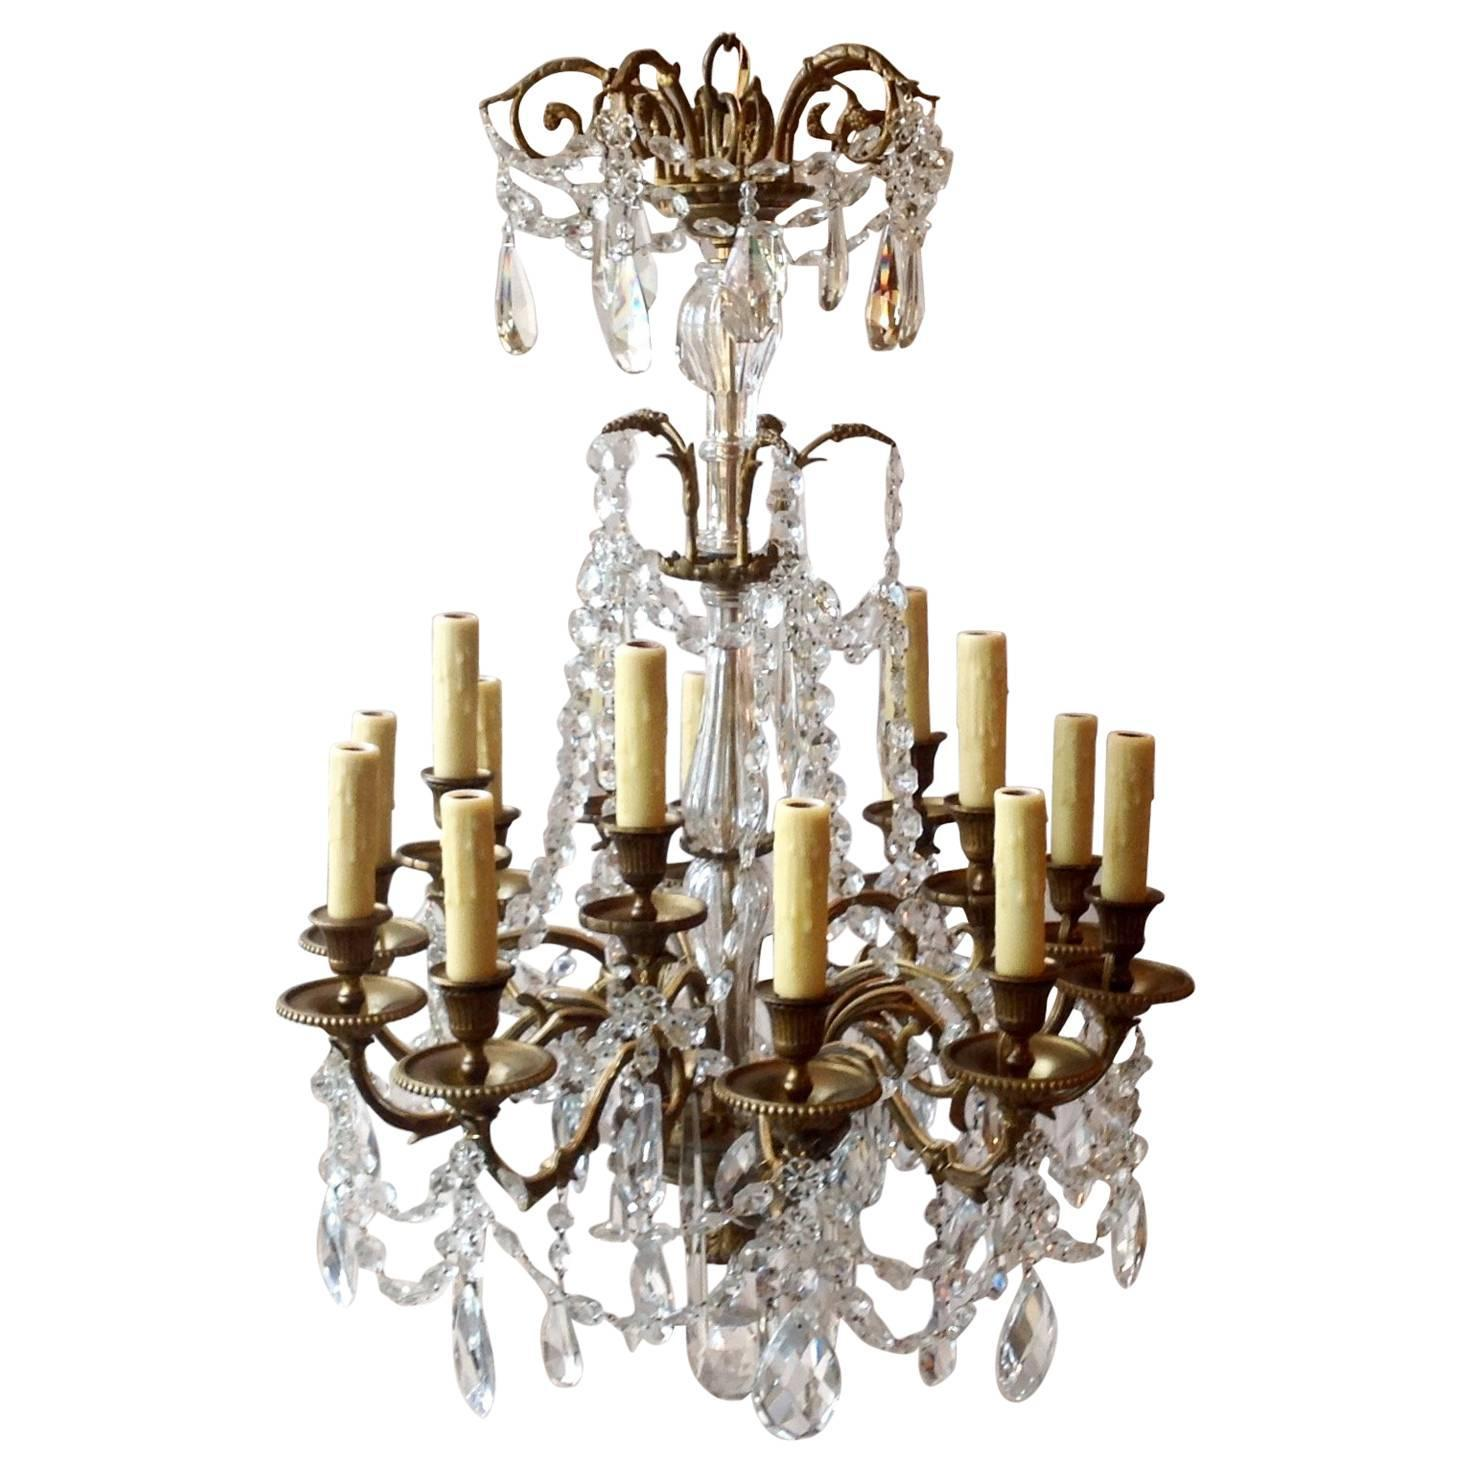 Antique European Bronze and Crystal Chandelier For Sale at